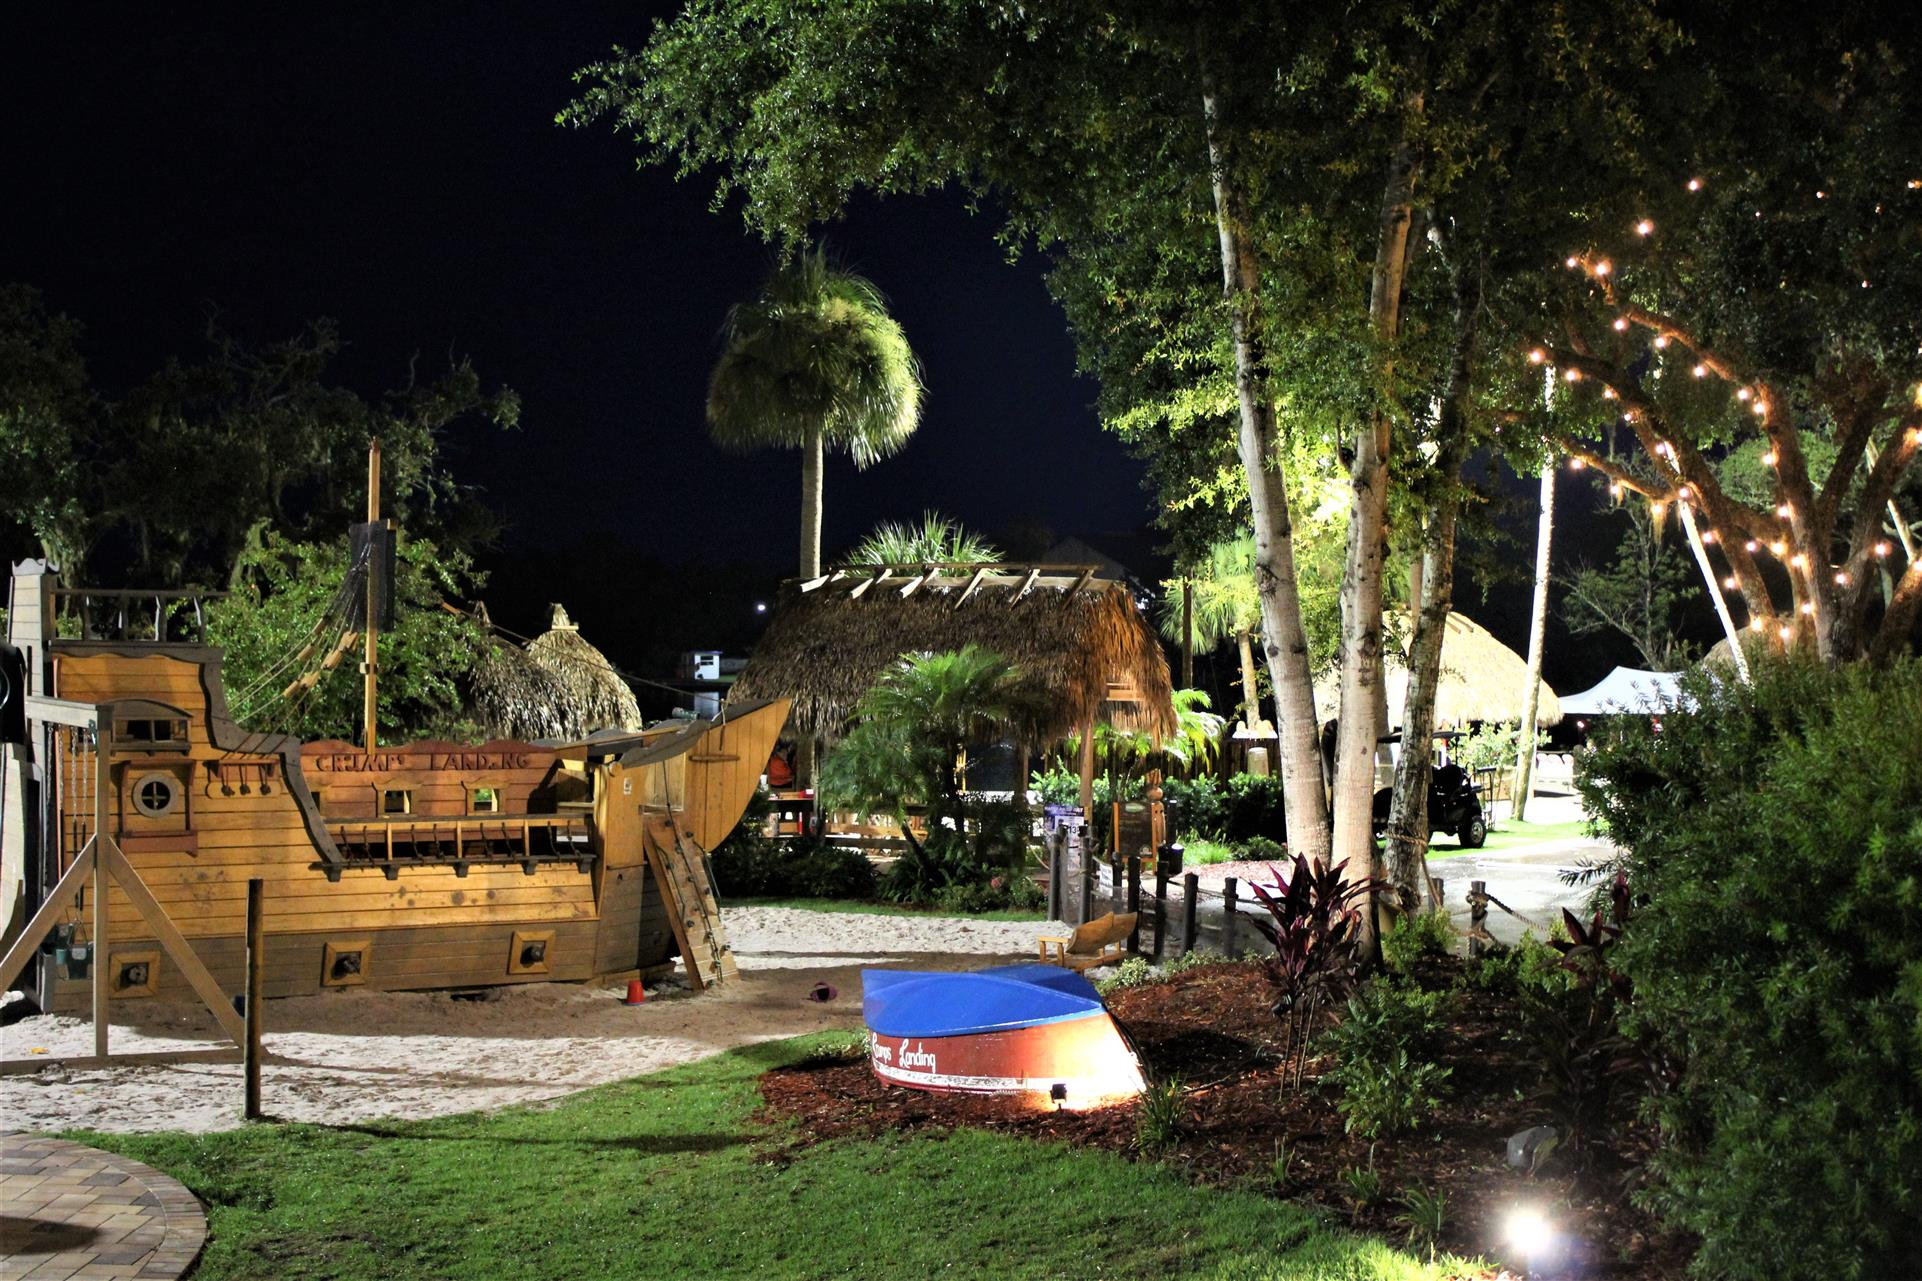 outside view of the main tiki hut at crumps landing